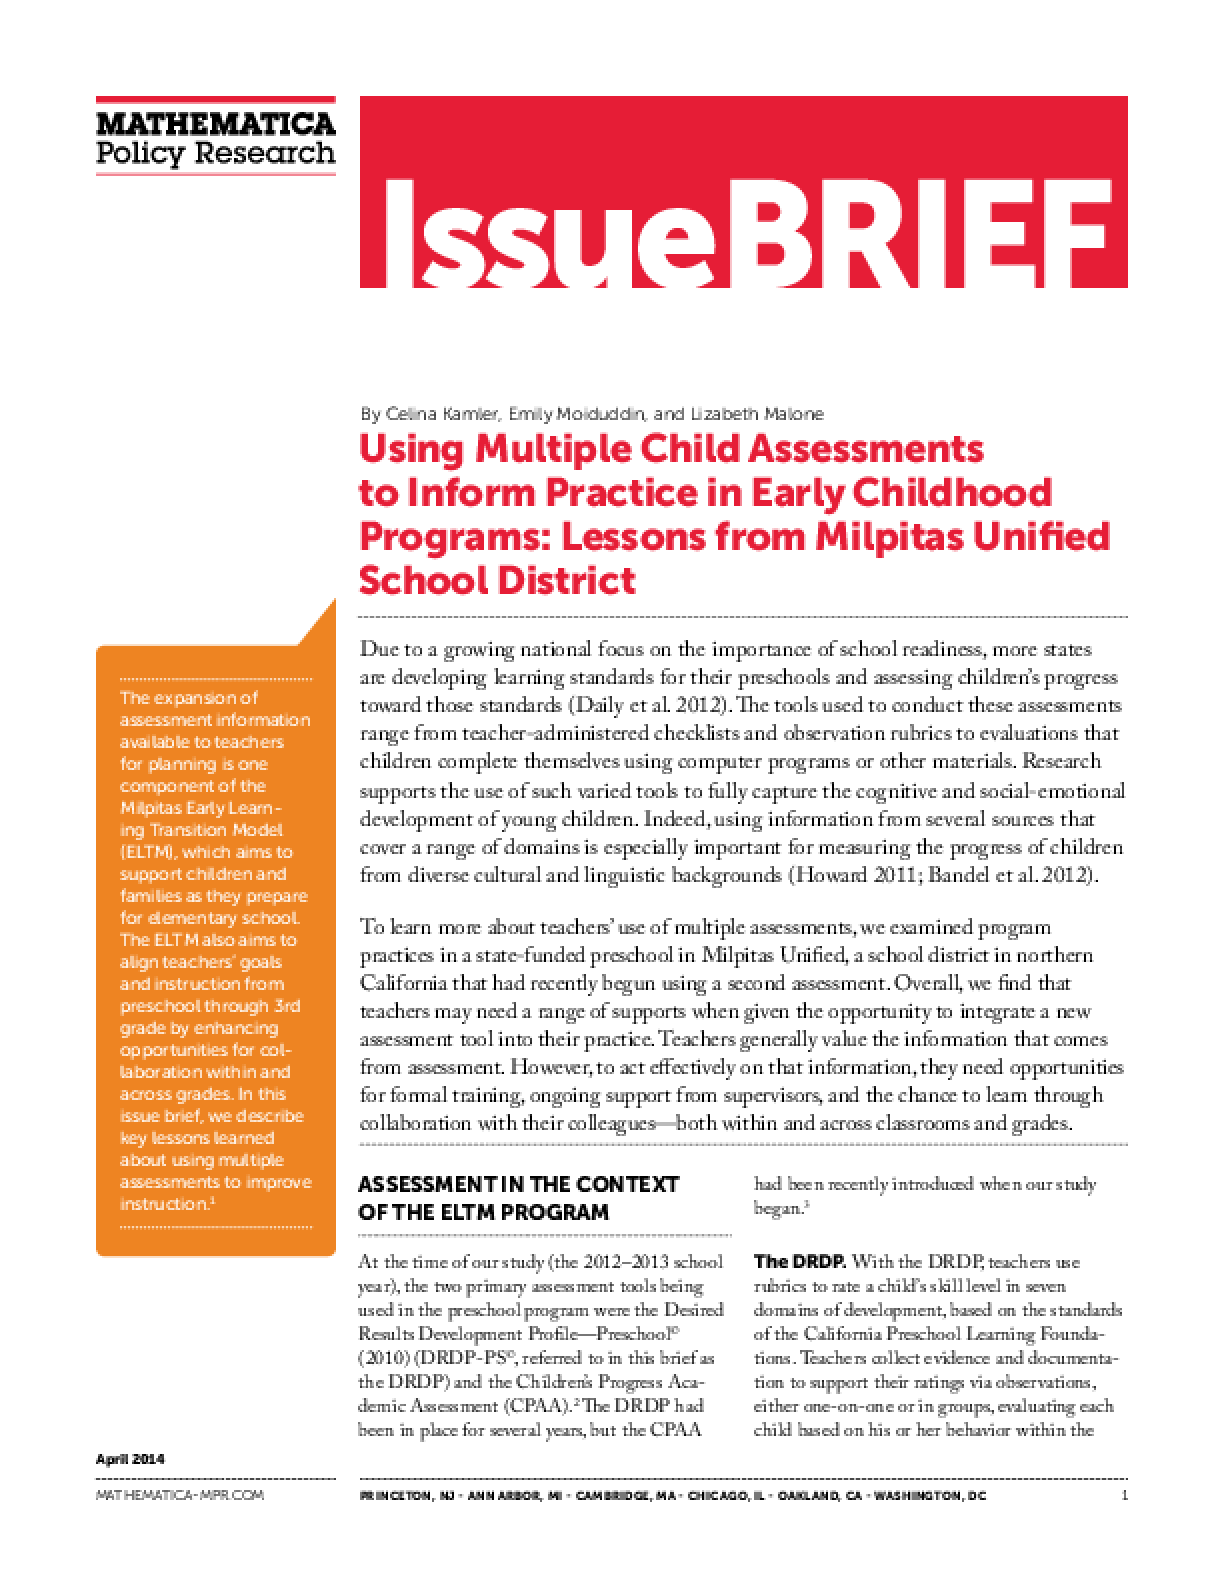 Using Multiple Child Assessments to Inform Practice in Early Childhood Programs: Lessons from Milpitas Unified School District